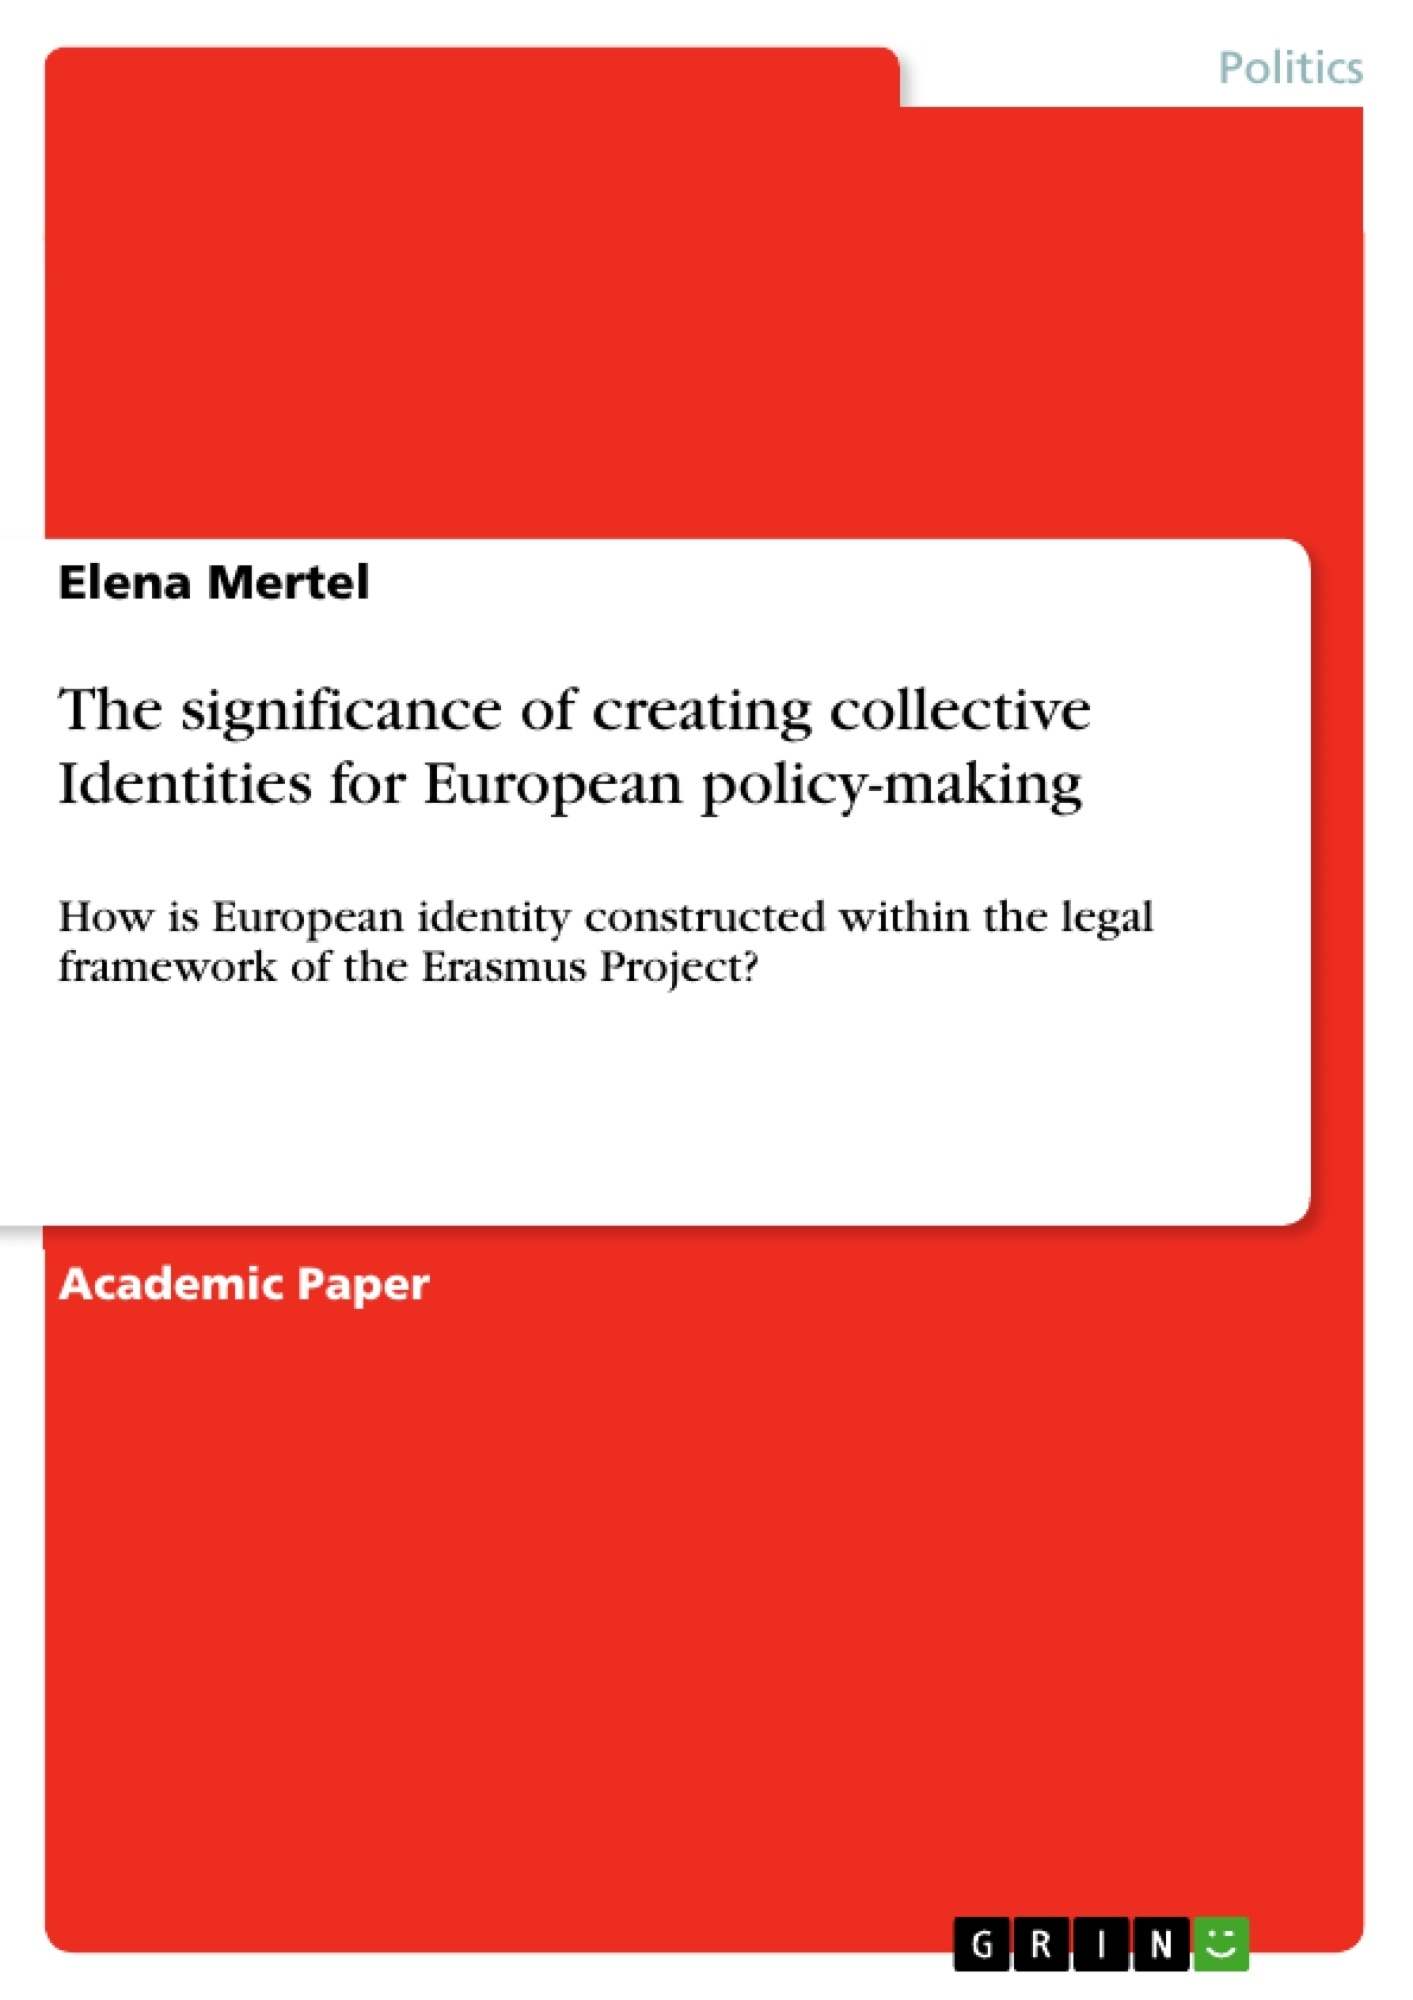 Title: The significance of creating collective Identities for European policy-making